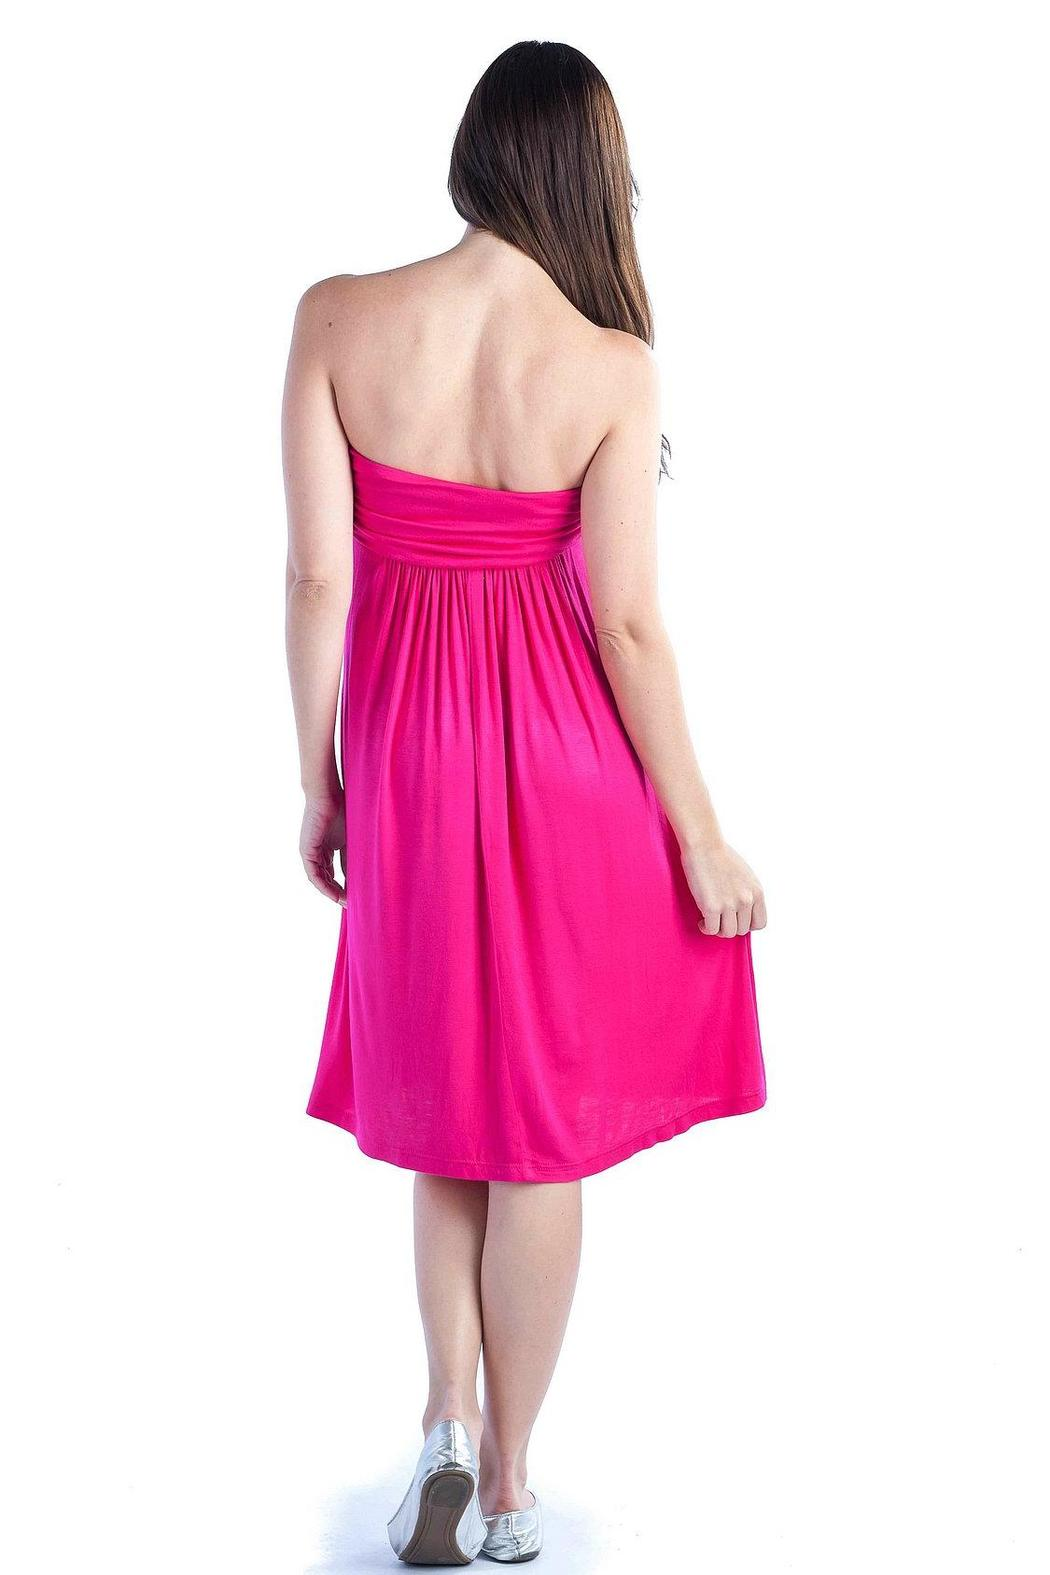 24/7 Comfort Apparel Empire-Tube Strapless Dress - Back Cropped Image